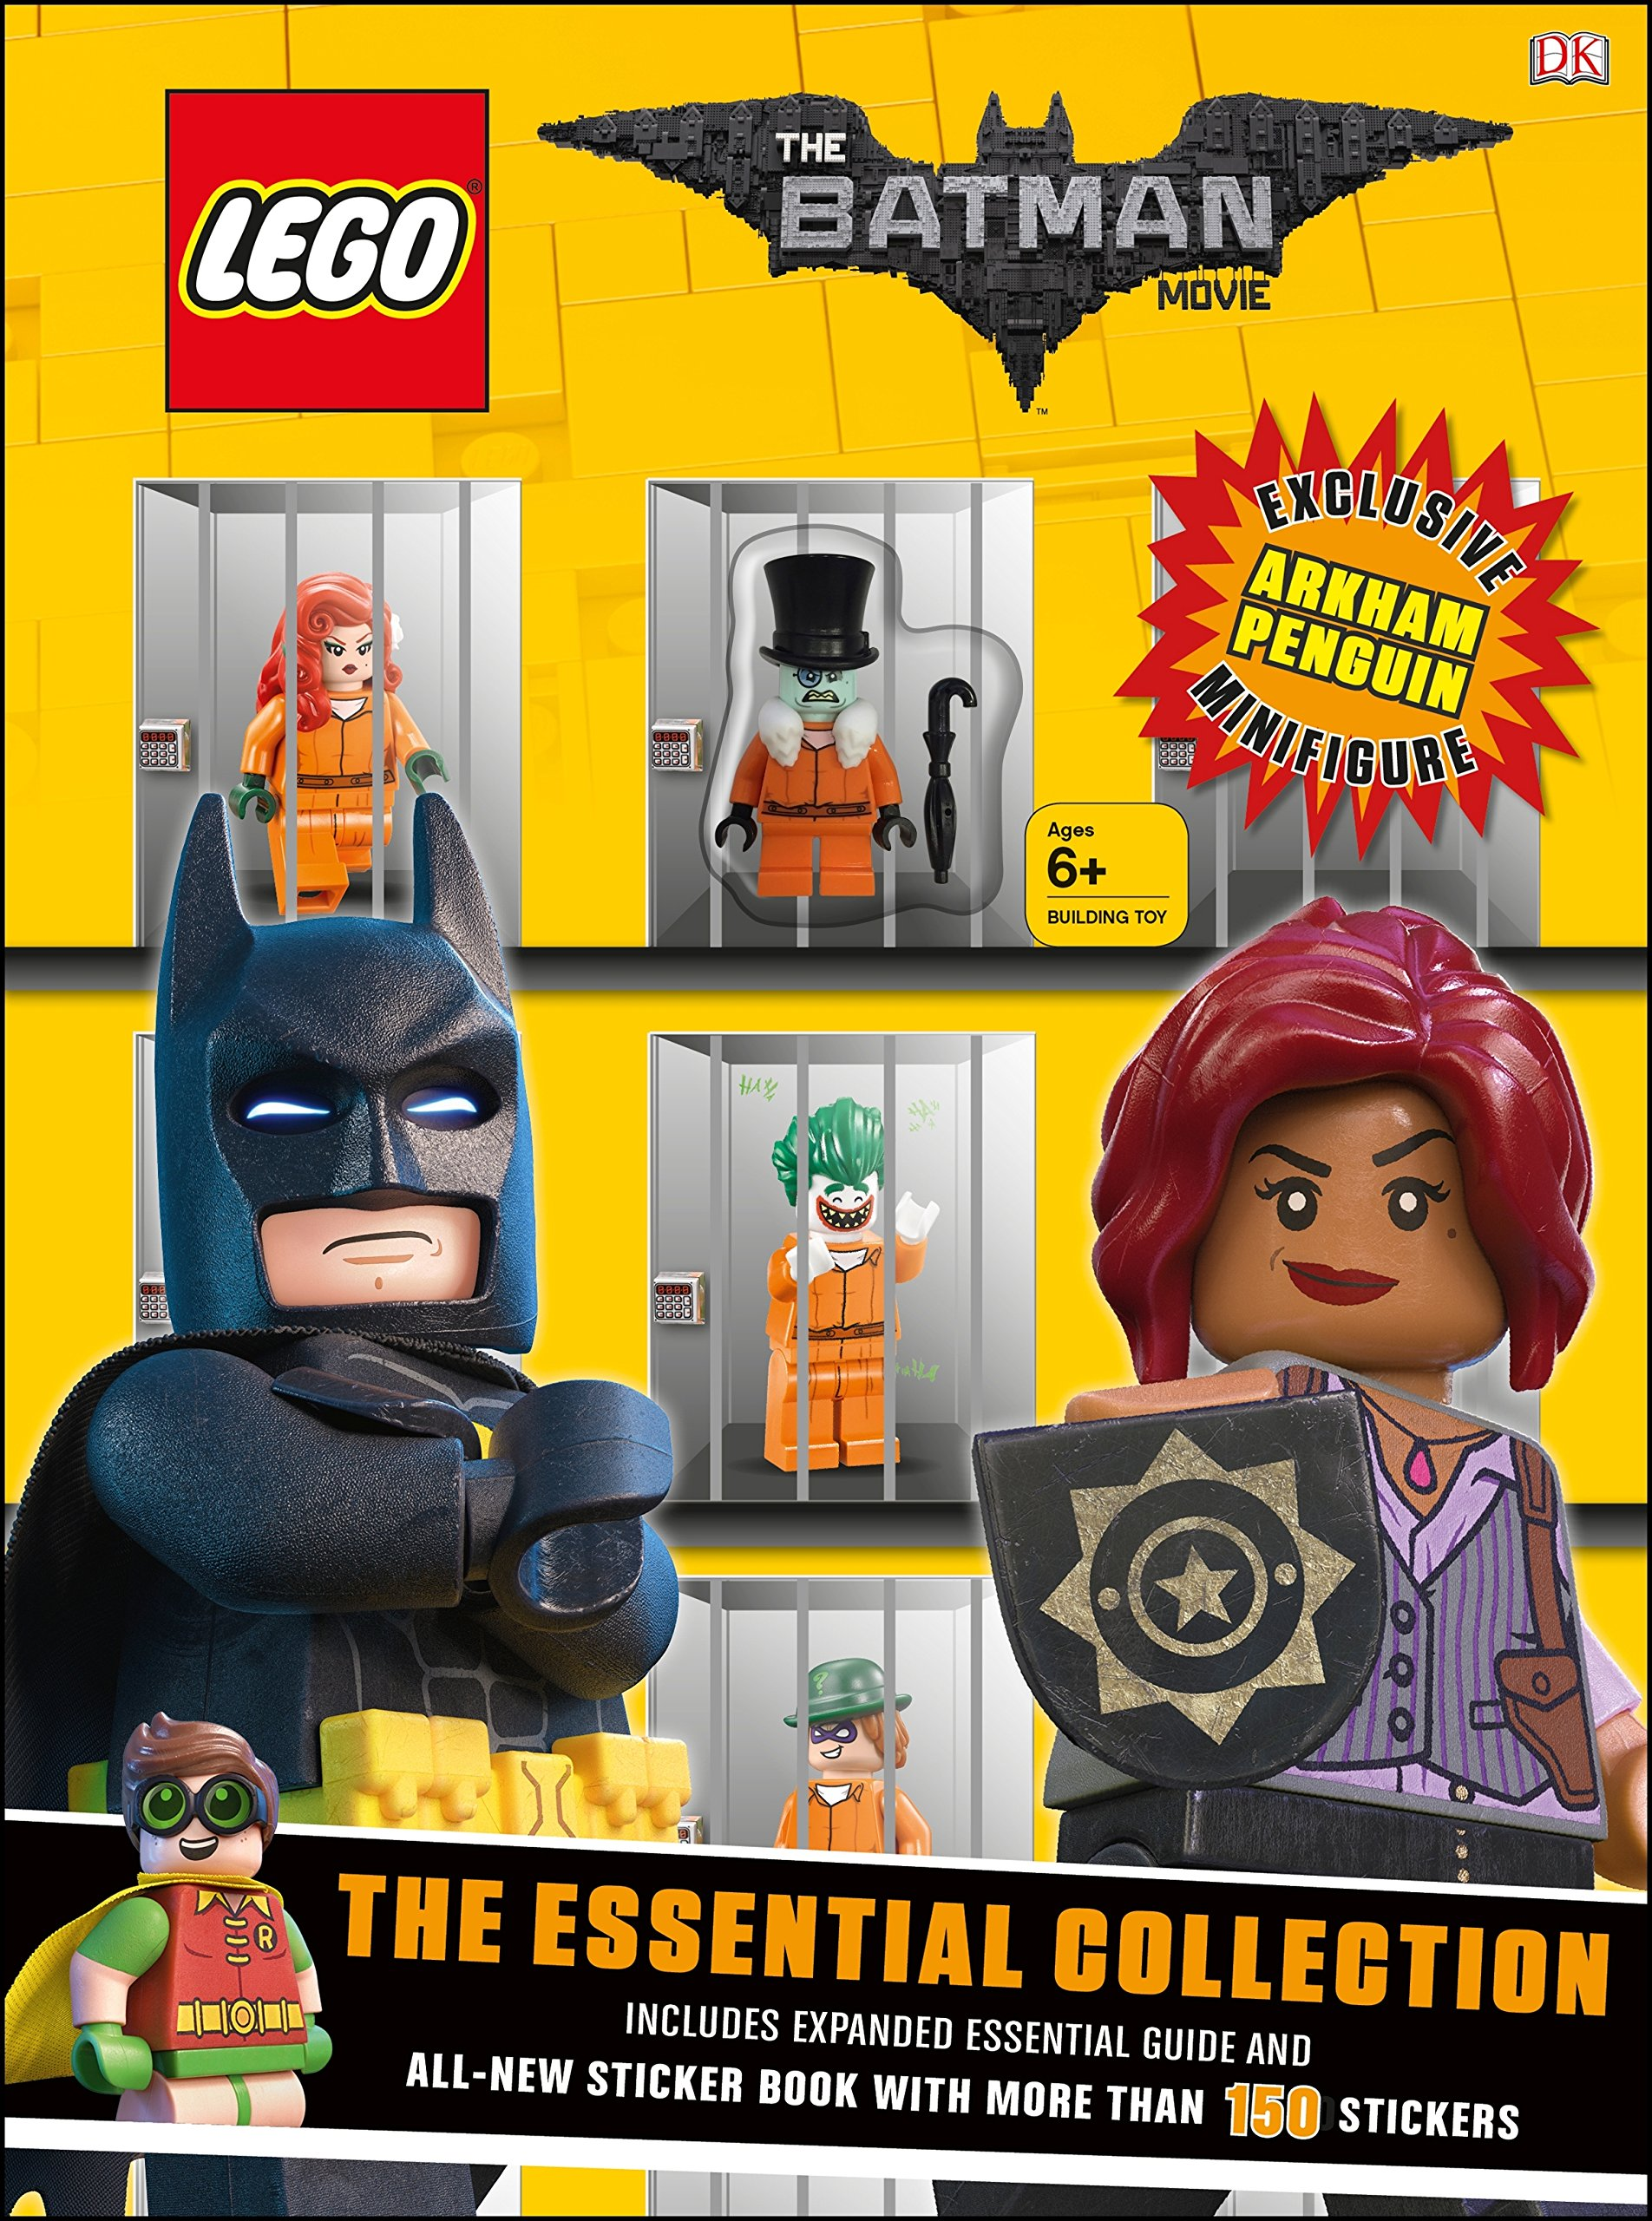 The Lego Batman Movie The Essential Collection Buy Online In Gambia Dk Children Products In Gambia See Prices Reviews And Free Delivery Over 3 500 D Desertcart